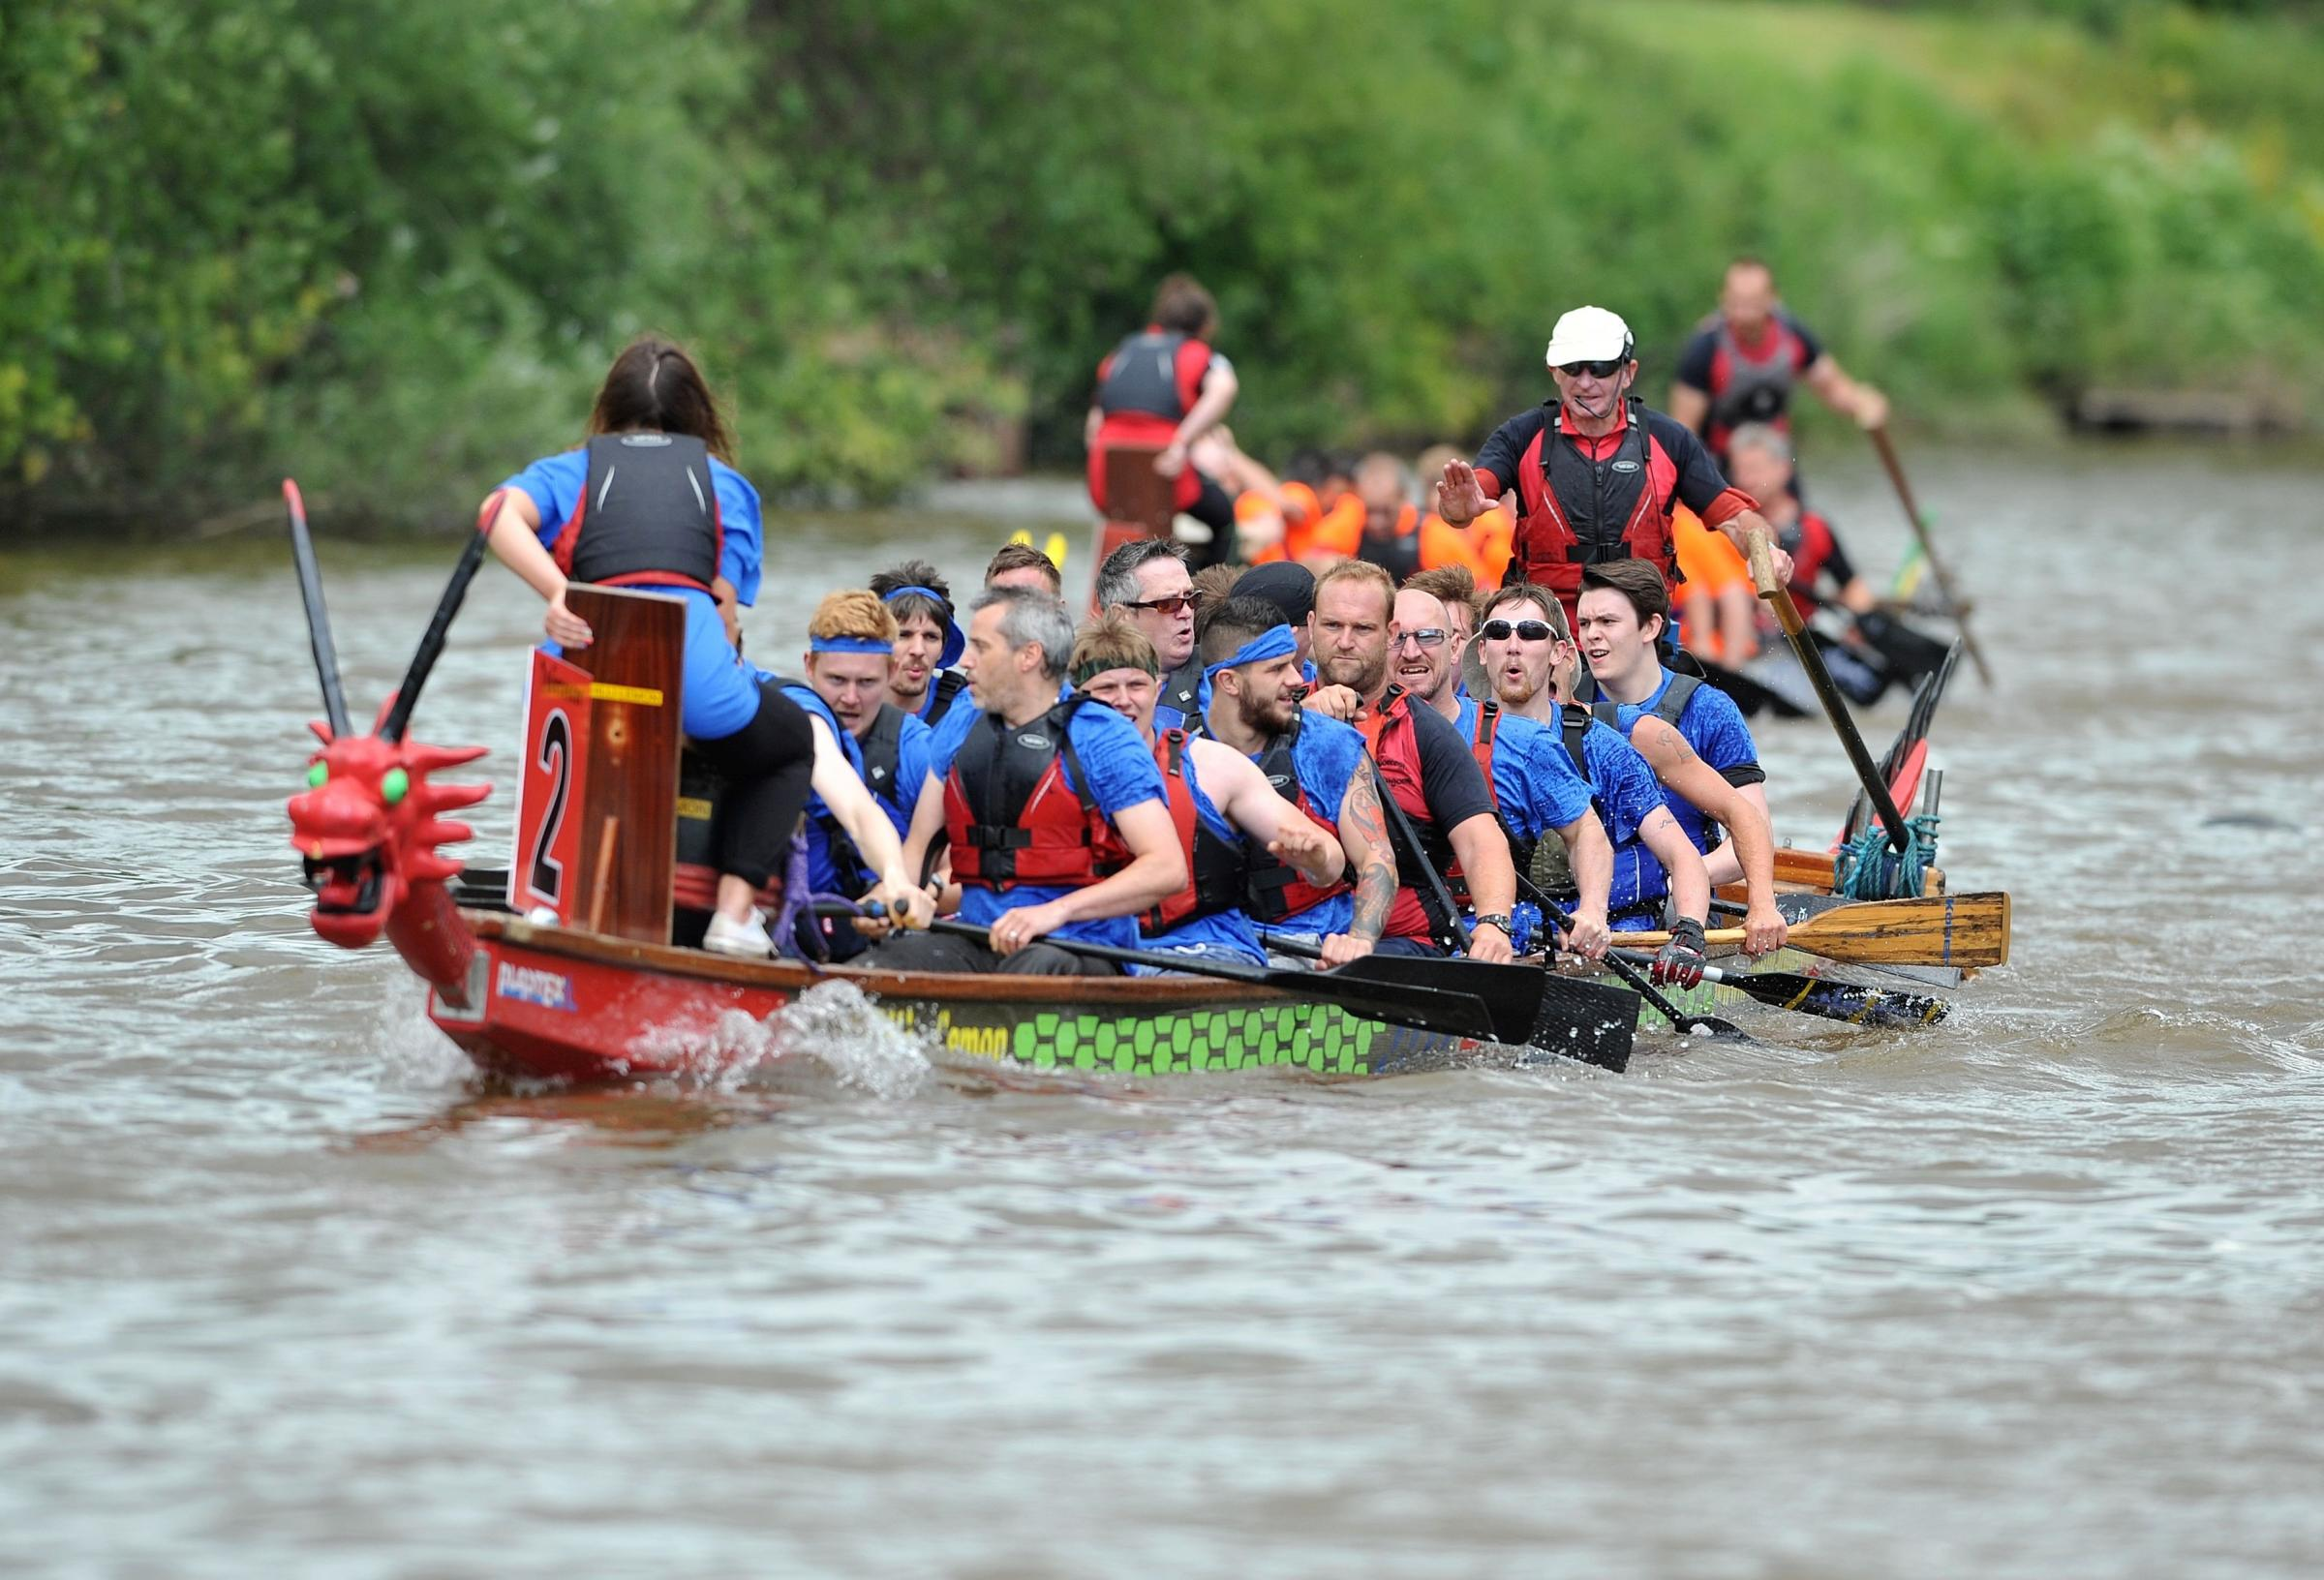 Hundreds take part in Worcester's Dragon Boat race